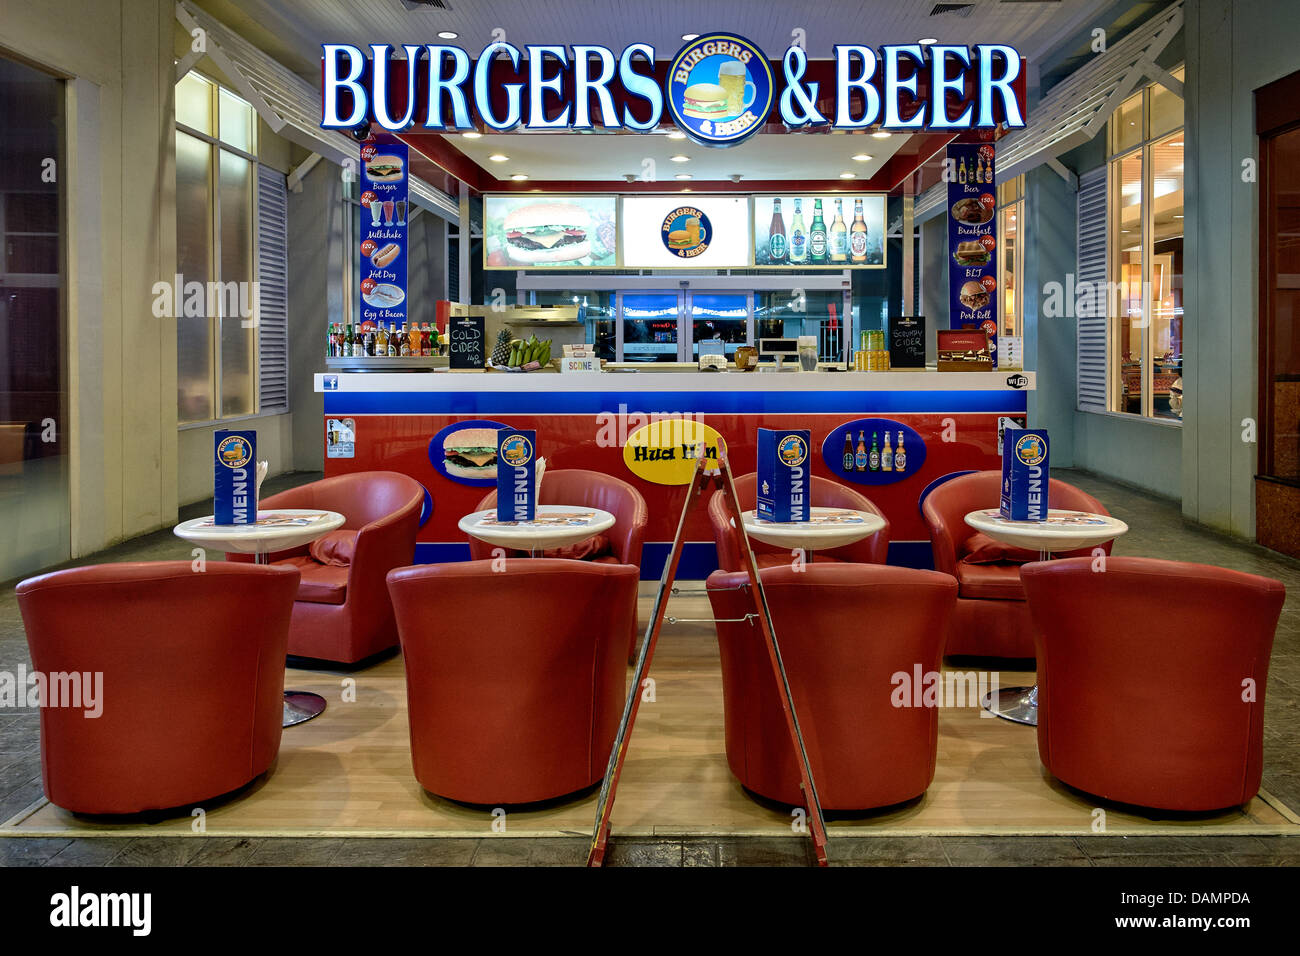 Burger And Beer Bar Located In The Interior Of A Shopping Mall With Stock Photo Alamy